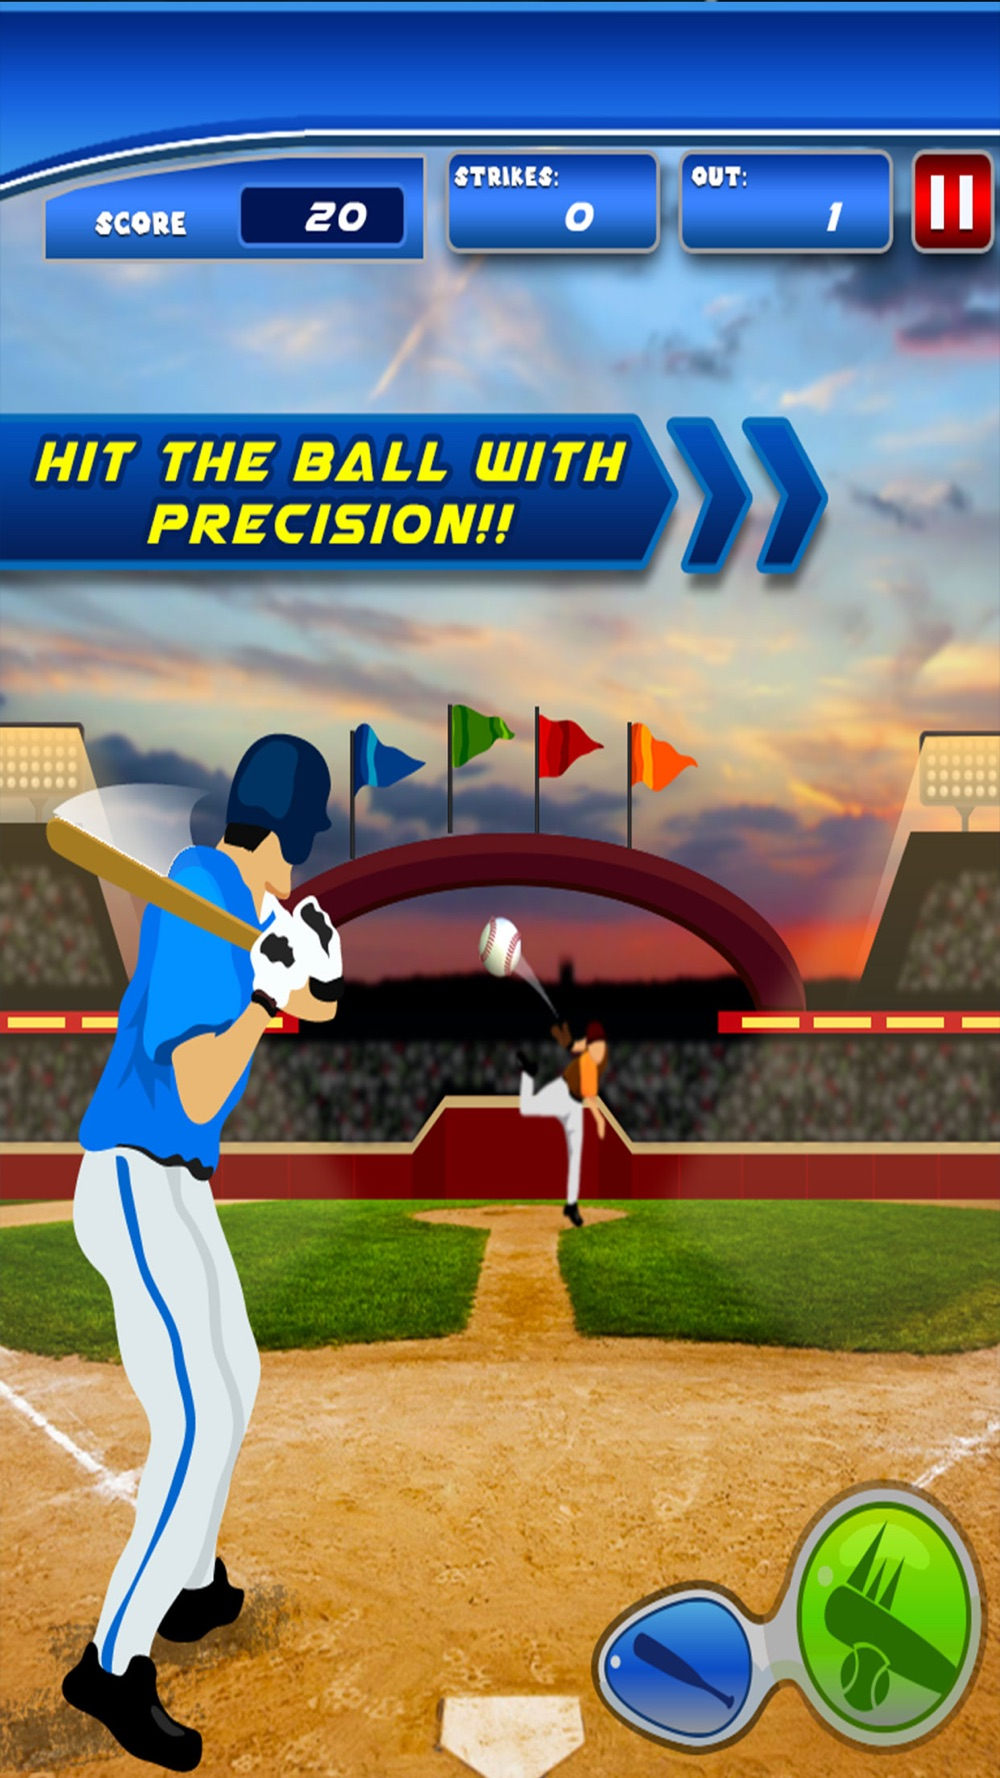 Baseball Tap Sports – Play as Star Player and Hit the Screw Ball to Score High in Championship hack tool